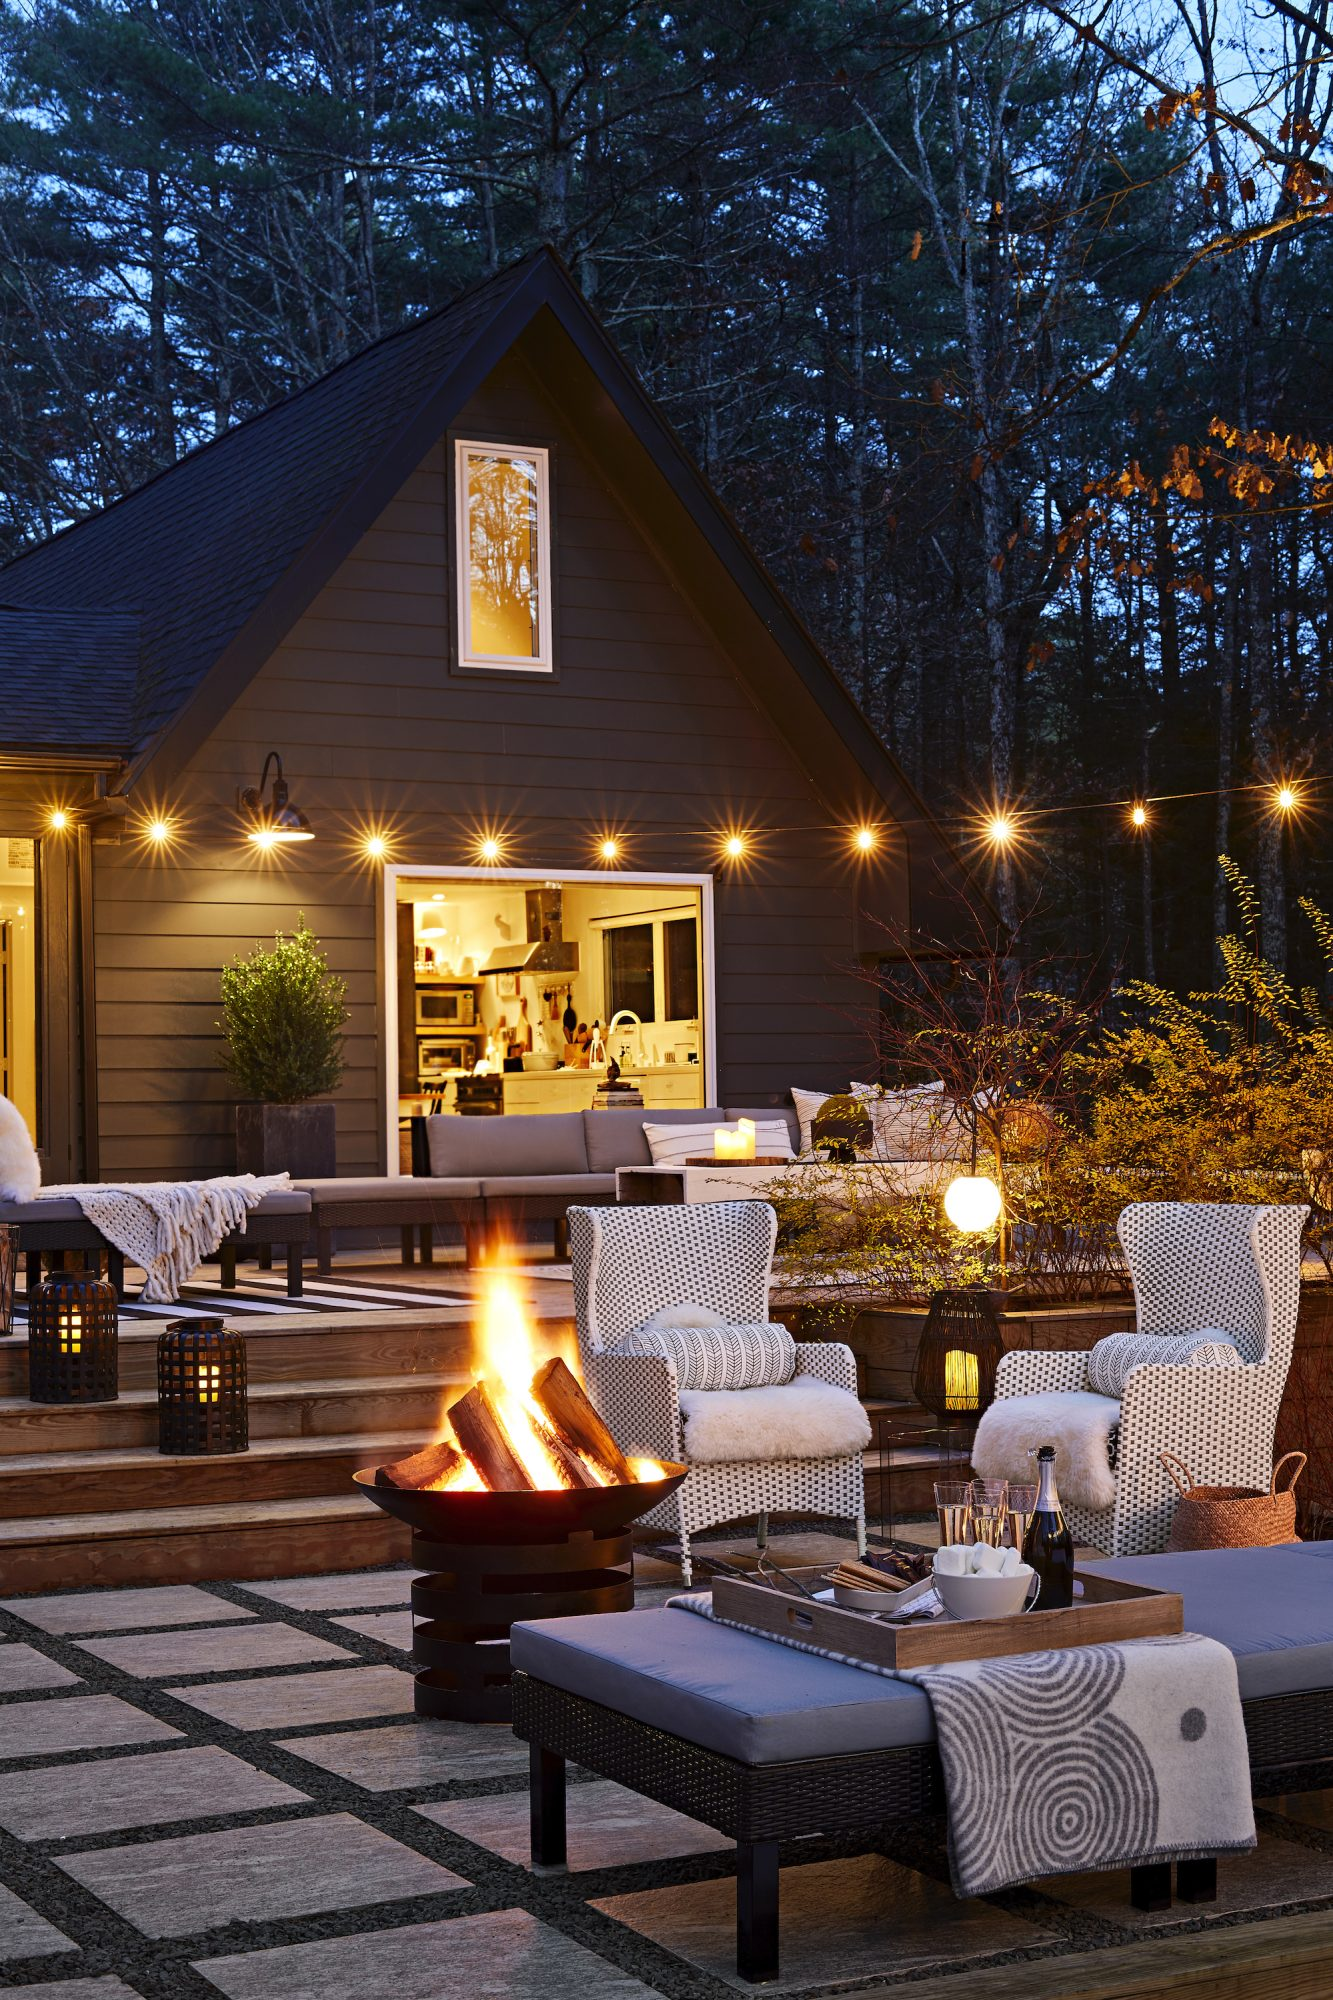 Space of the Month Feb 2021, Deck Decor with Lights and Firepit